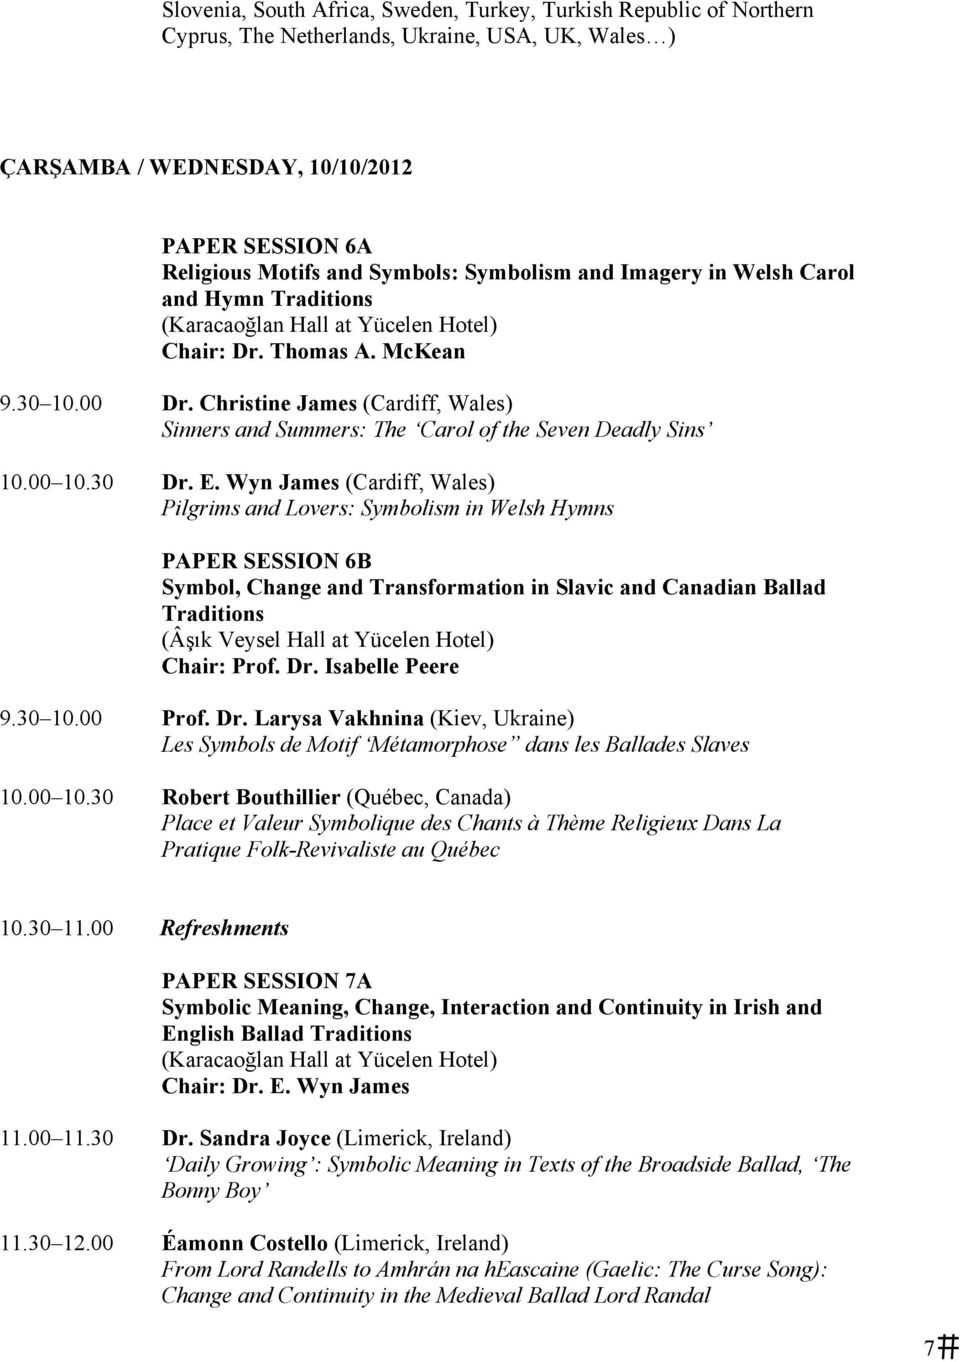 30 Dr. E. Wyn James (Cardiff, Wales) Pilgrims and Lovers: Symbolism in Welsh Hymns PAPER SESSION 6B Symbol, Change and Transformation in Slavic and Canadian Ballad Traditions Chair: Prof. Dr. Isabelle Peere 9.